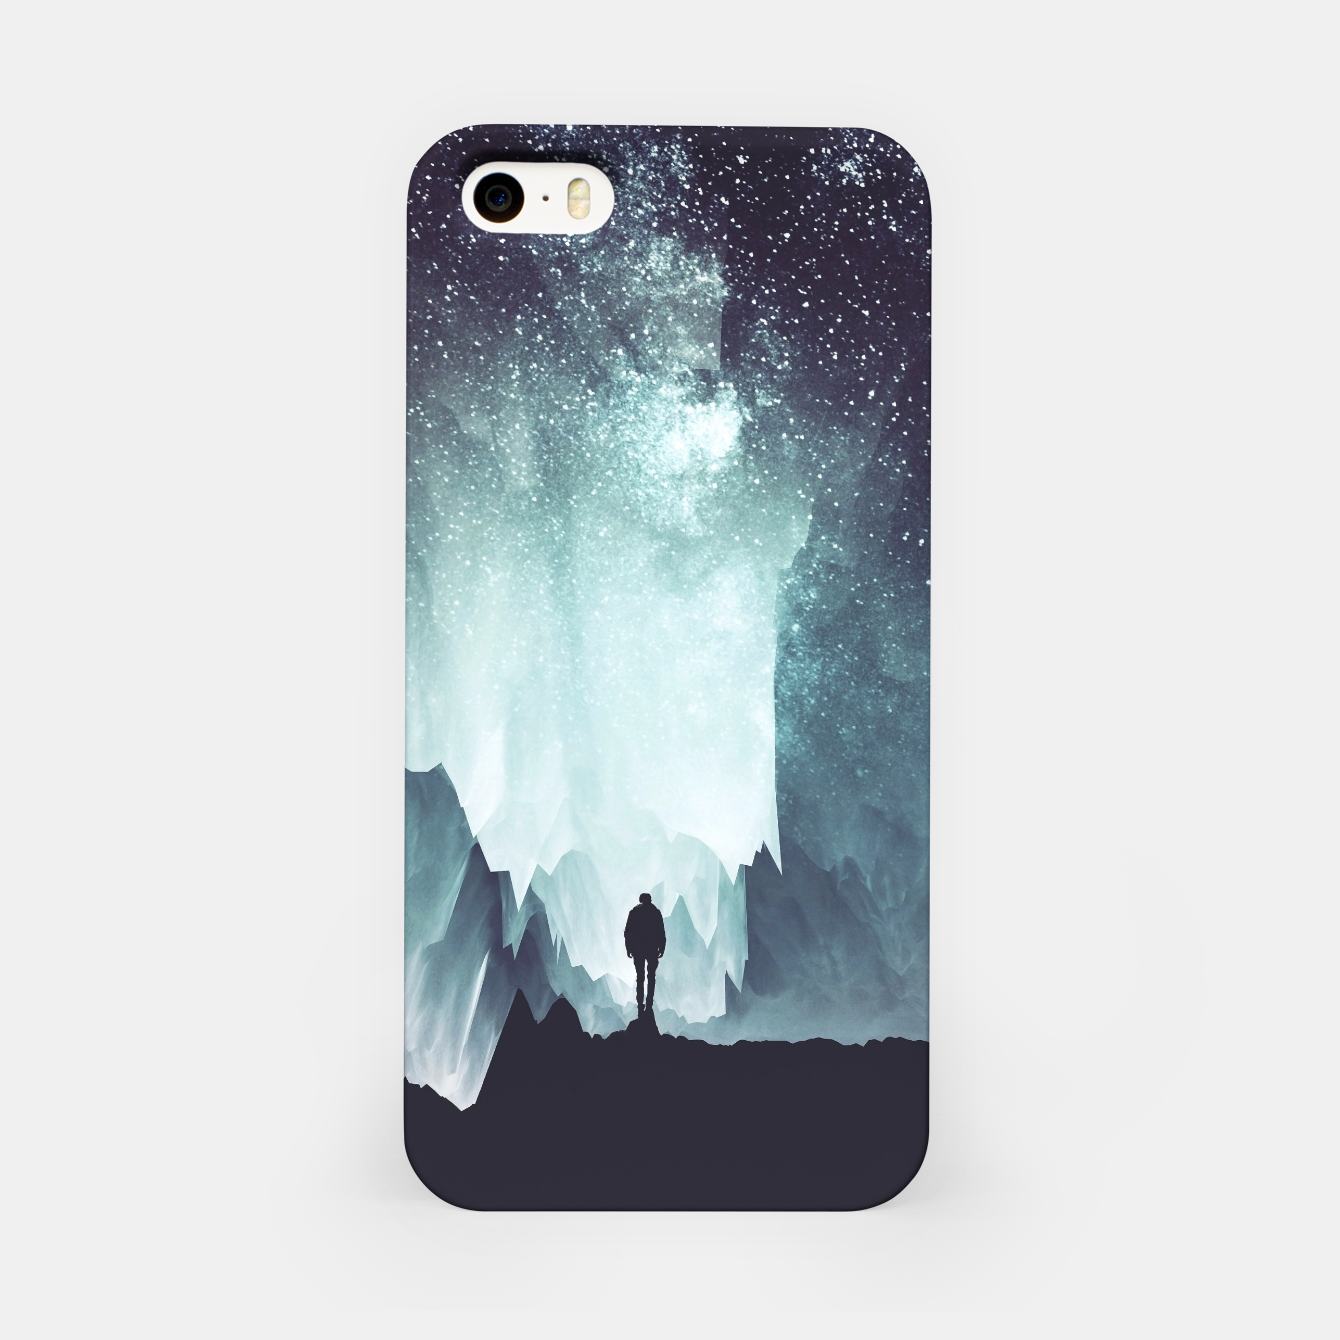 Imagen de Northern iPhone Case - Live Heroes